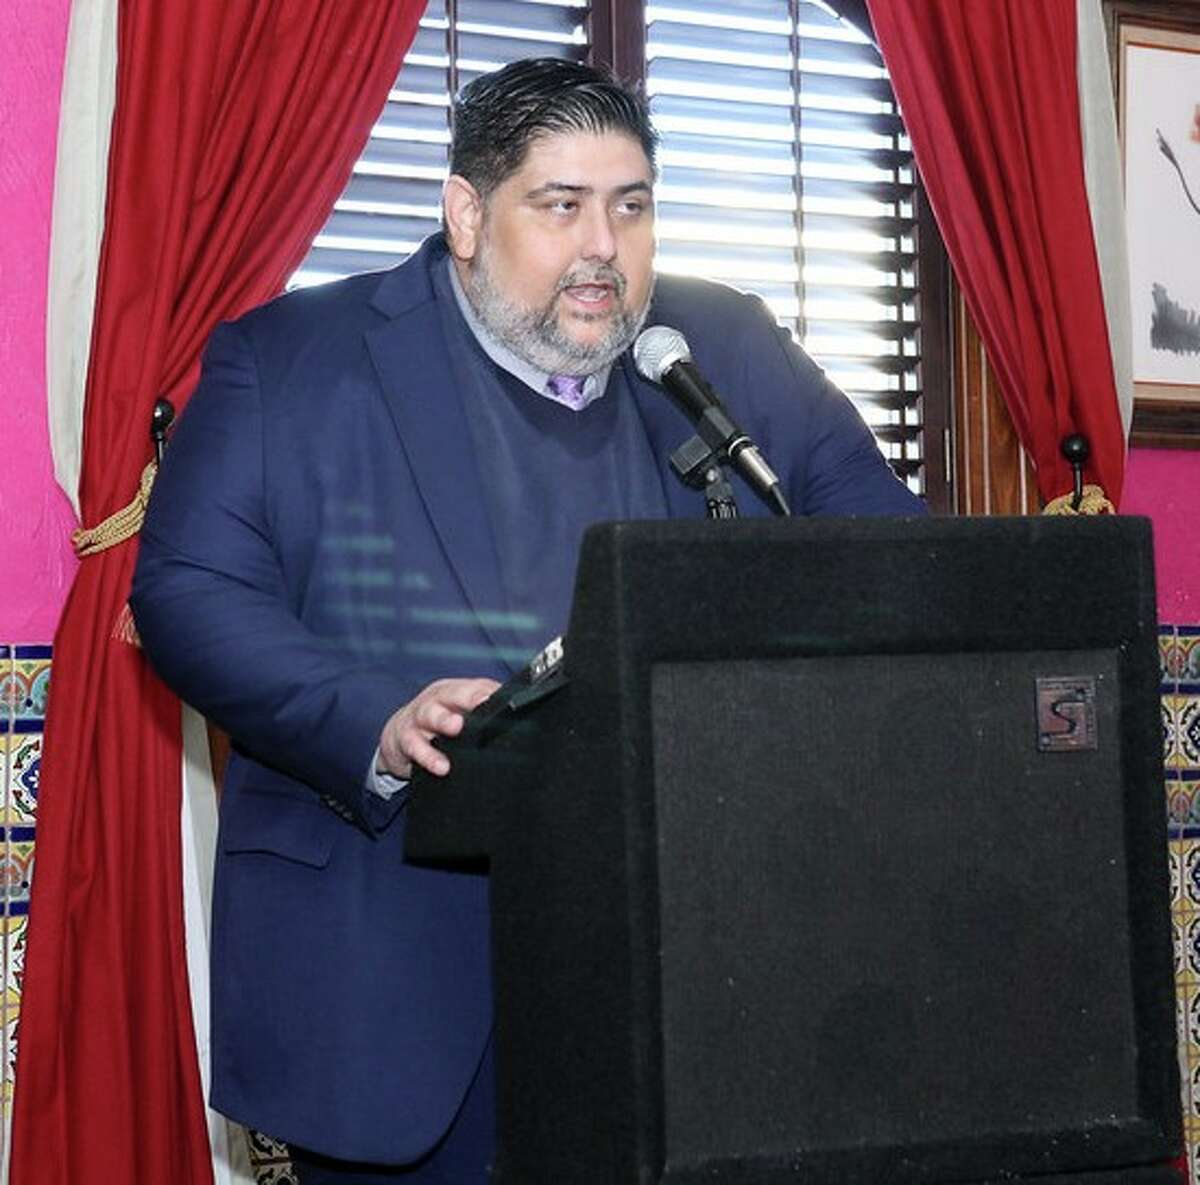 Gabe D. Farias, president and CEO of the West San Antonio Chamber of Commerce, addresses the audience at the chamber's annual State of the Chamber event on Jan. 28, 2015, at Pico de Gallo Mexican Restaurant.